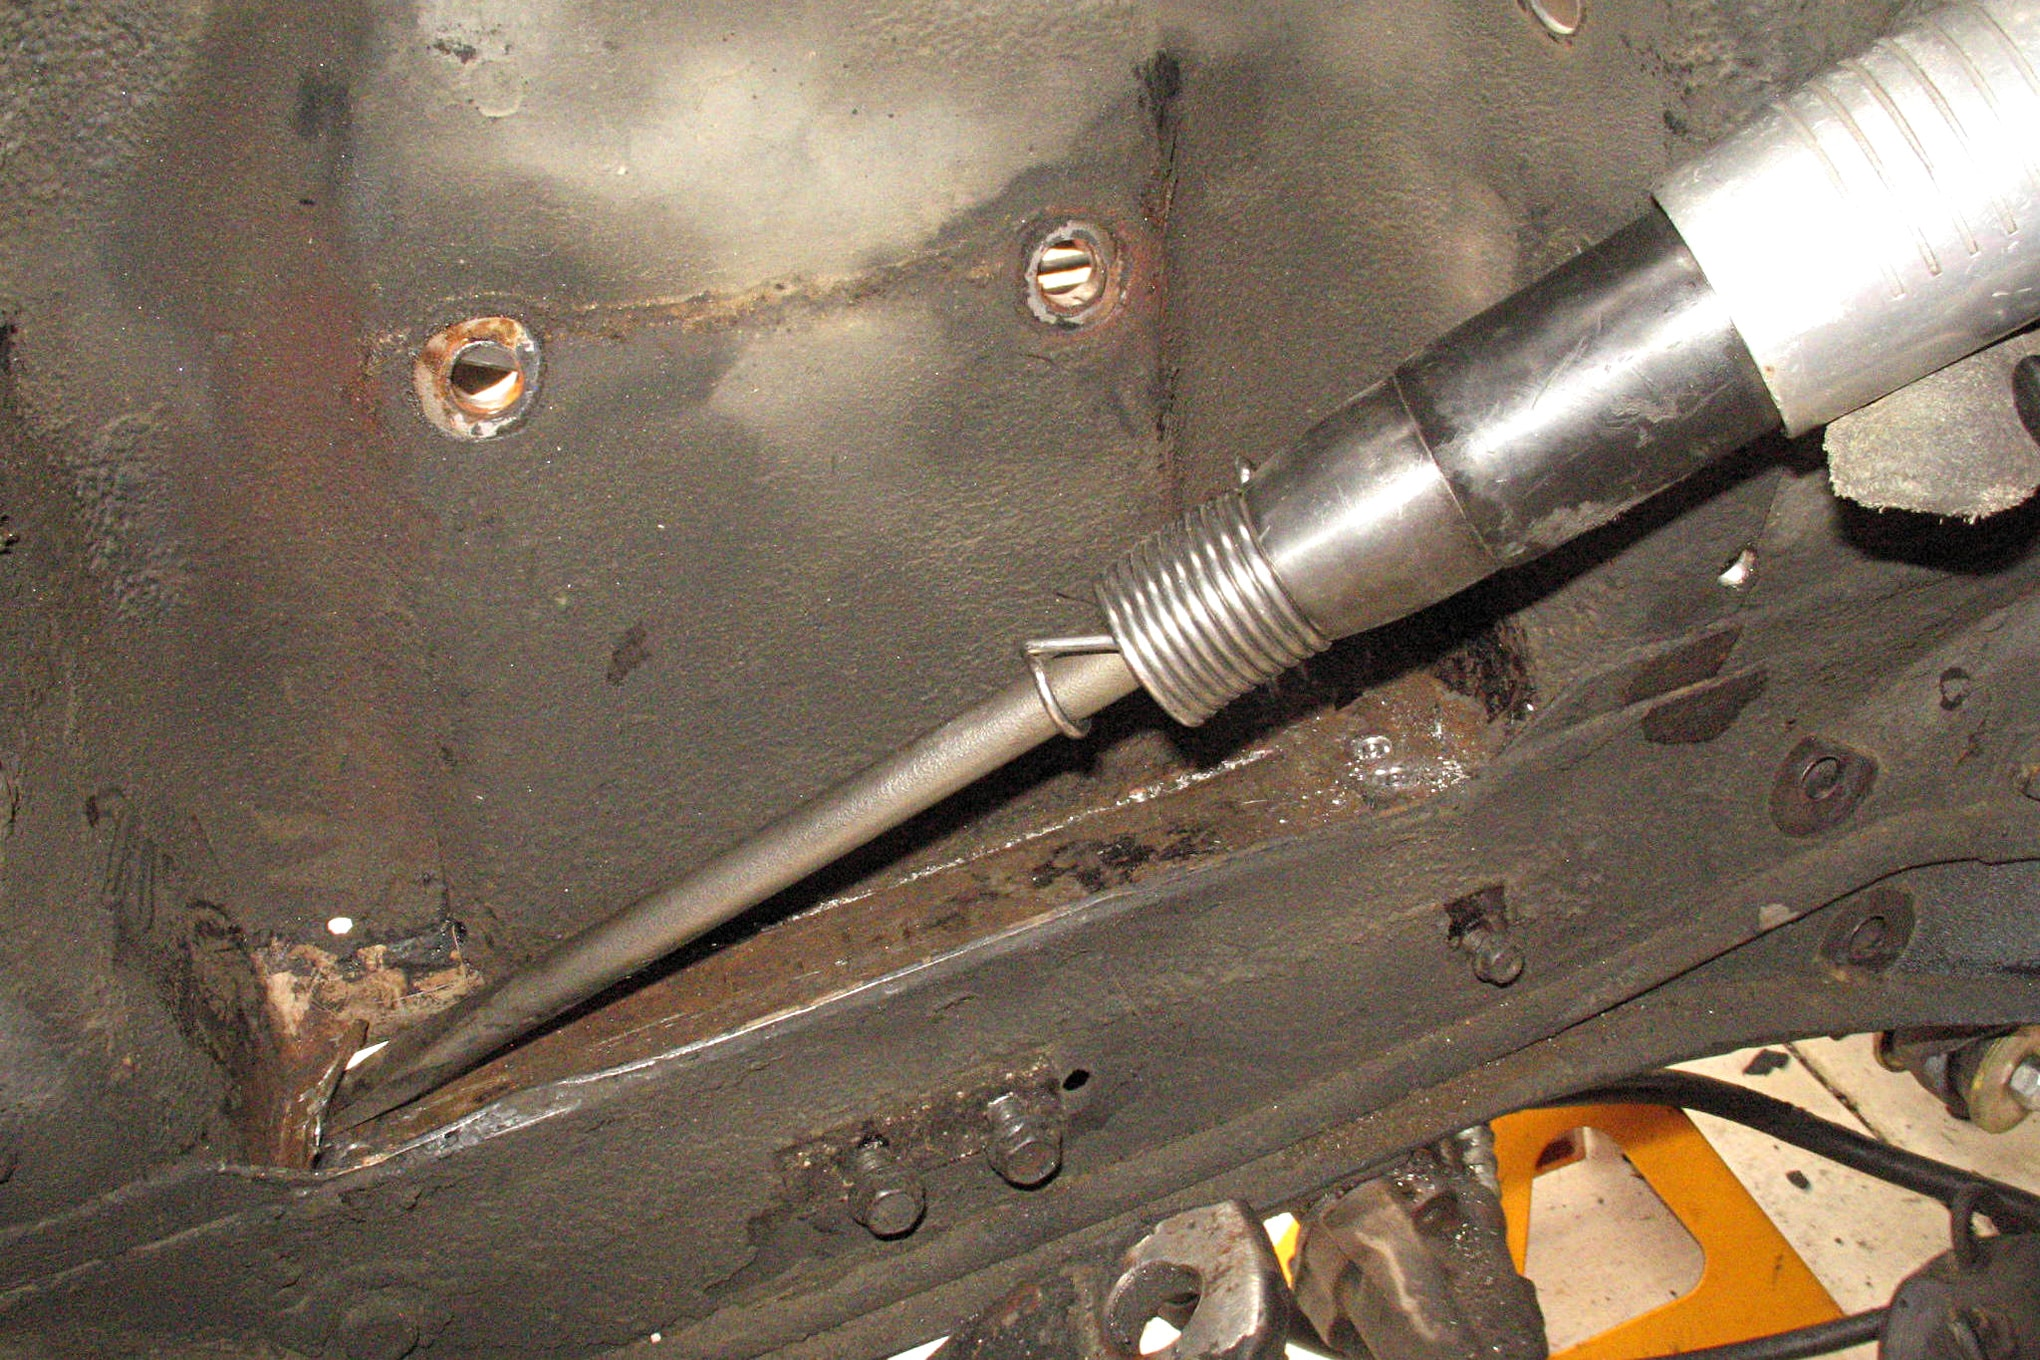 011 Shock Tower Replacement Air Chisel